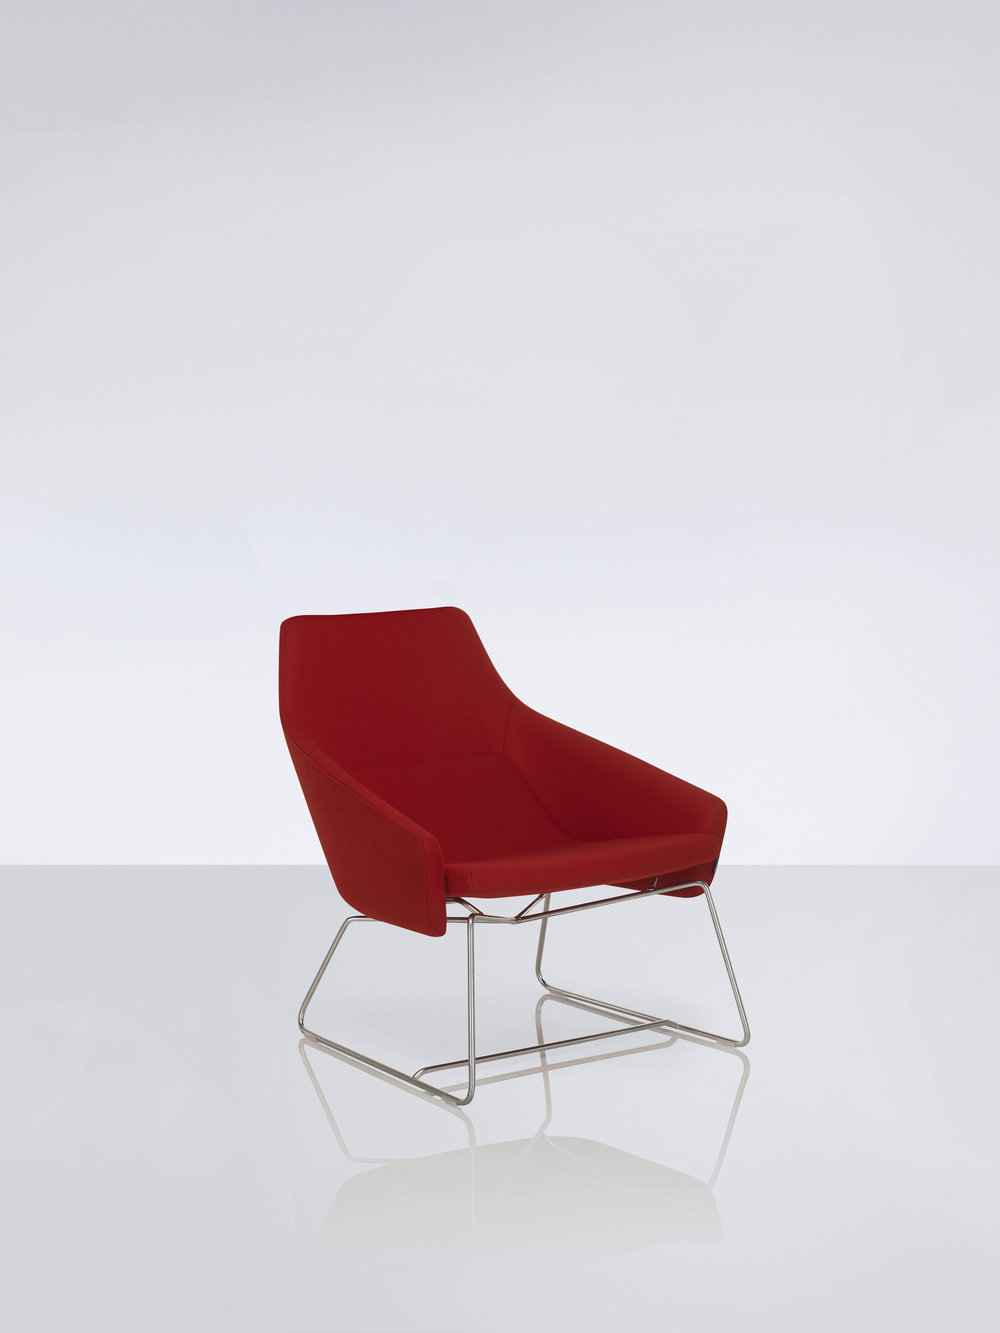 Wrap Easy Chair - Ski / Simon Pengelly for MODUS Product Link SPEC SHEET